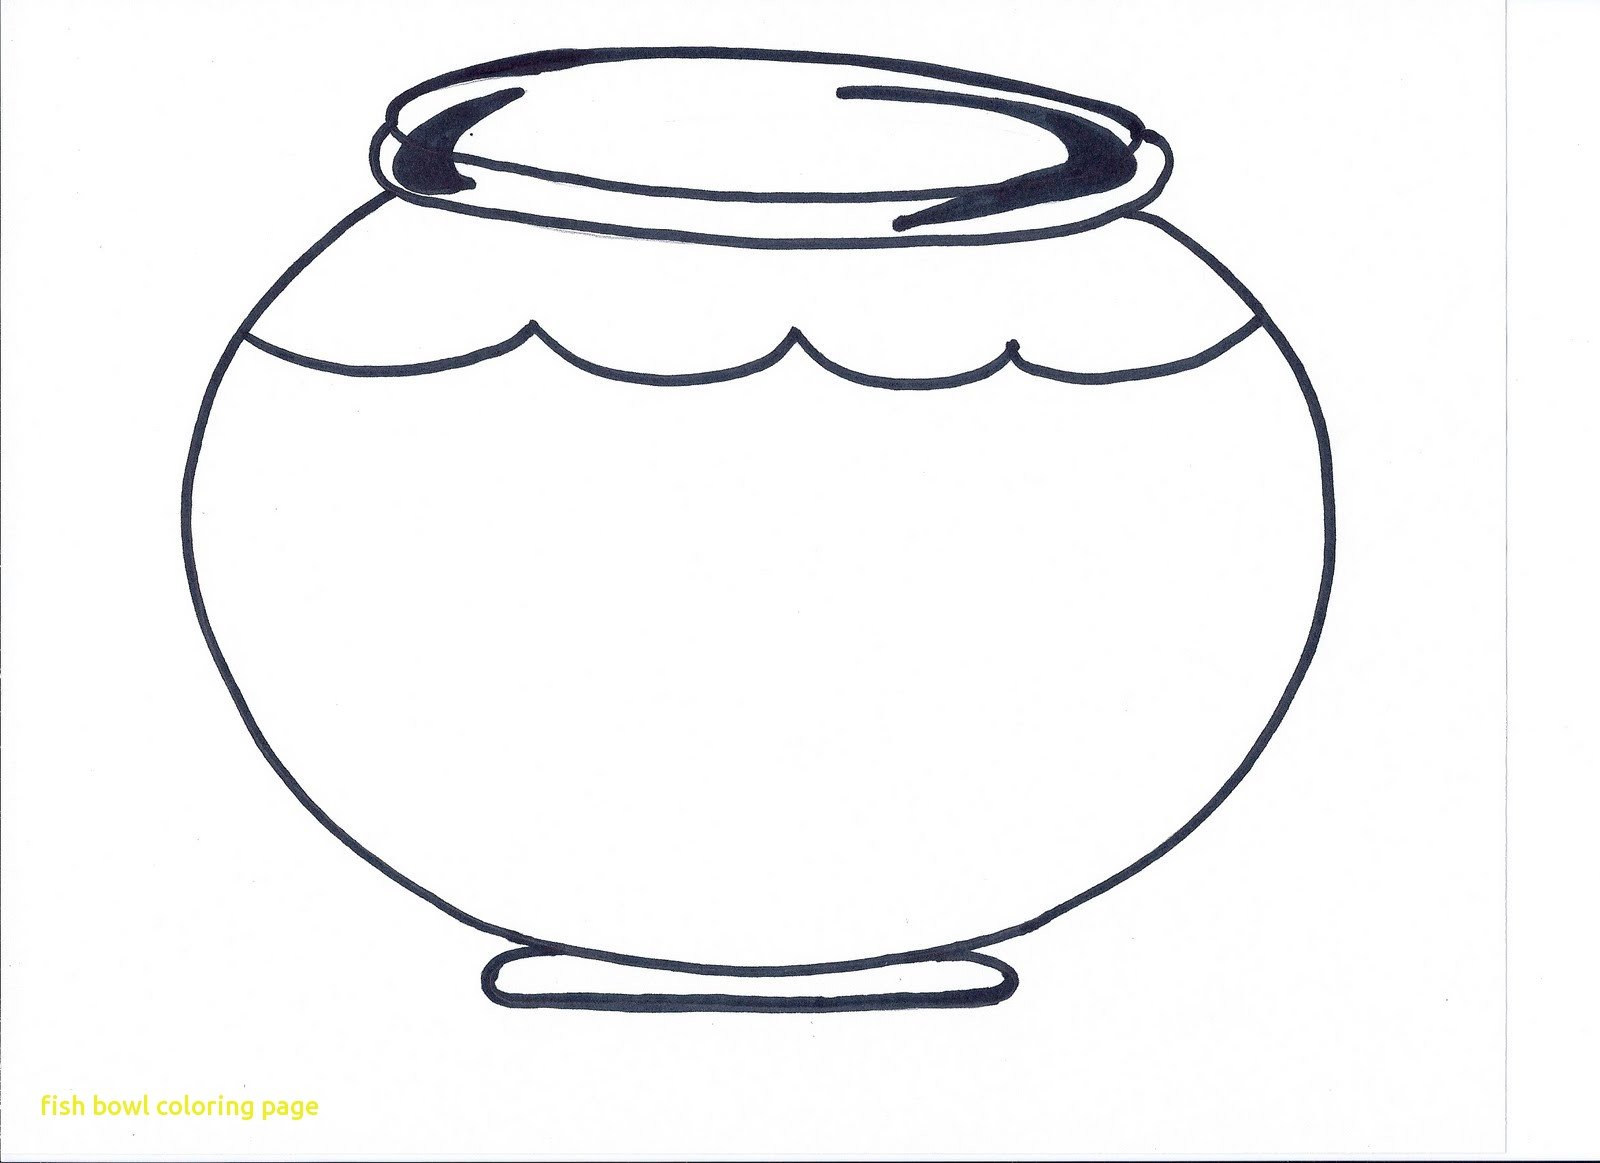 Fish Bowl Coloring Page coloring page & book for kids.   1163x1600